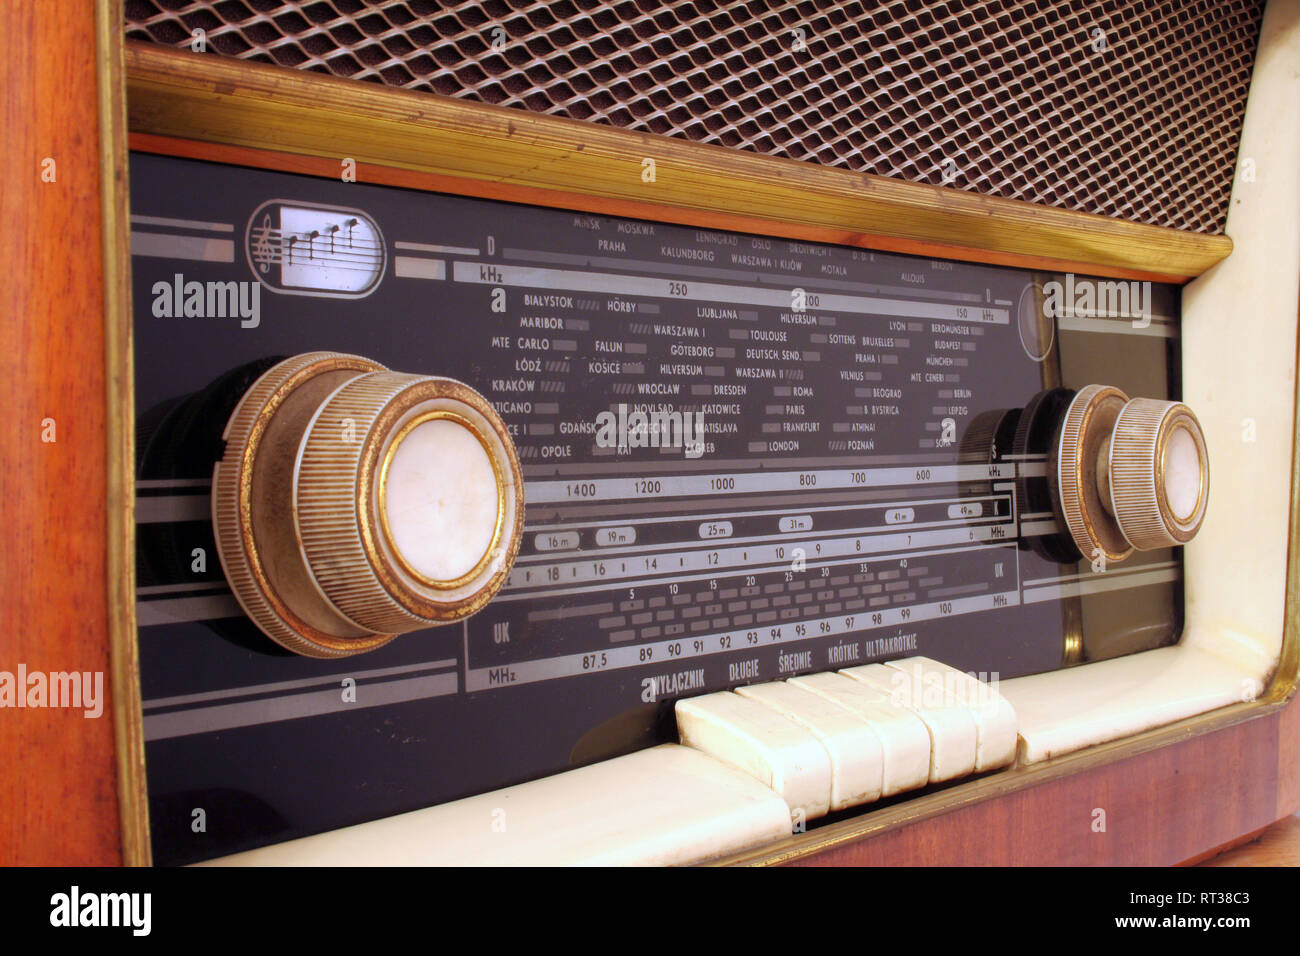 old antique wooden radio of my grandparents - Stock Image